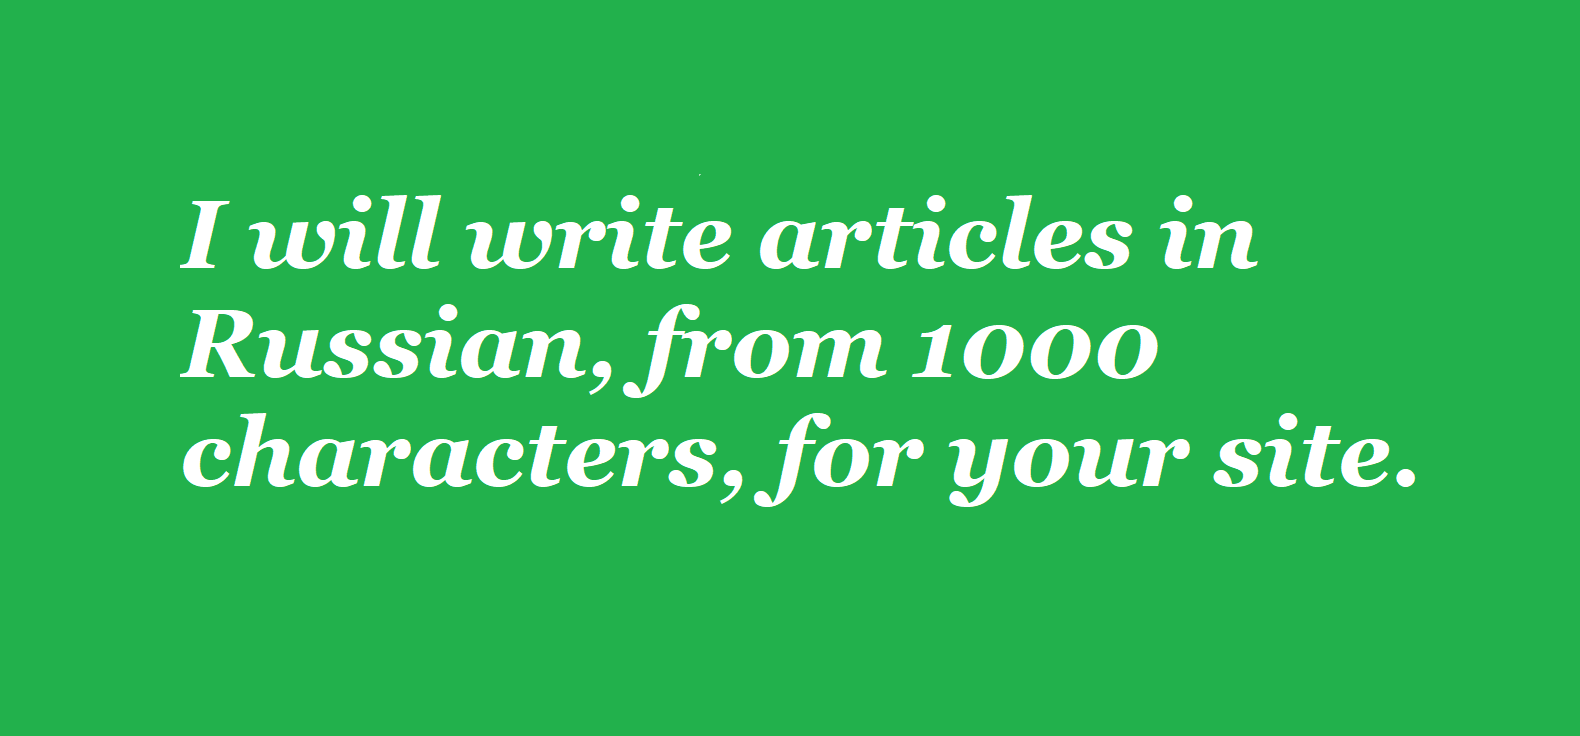 I will write articles in Russian, from 1000 characters, for your site in 1-2 days.